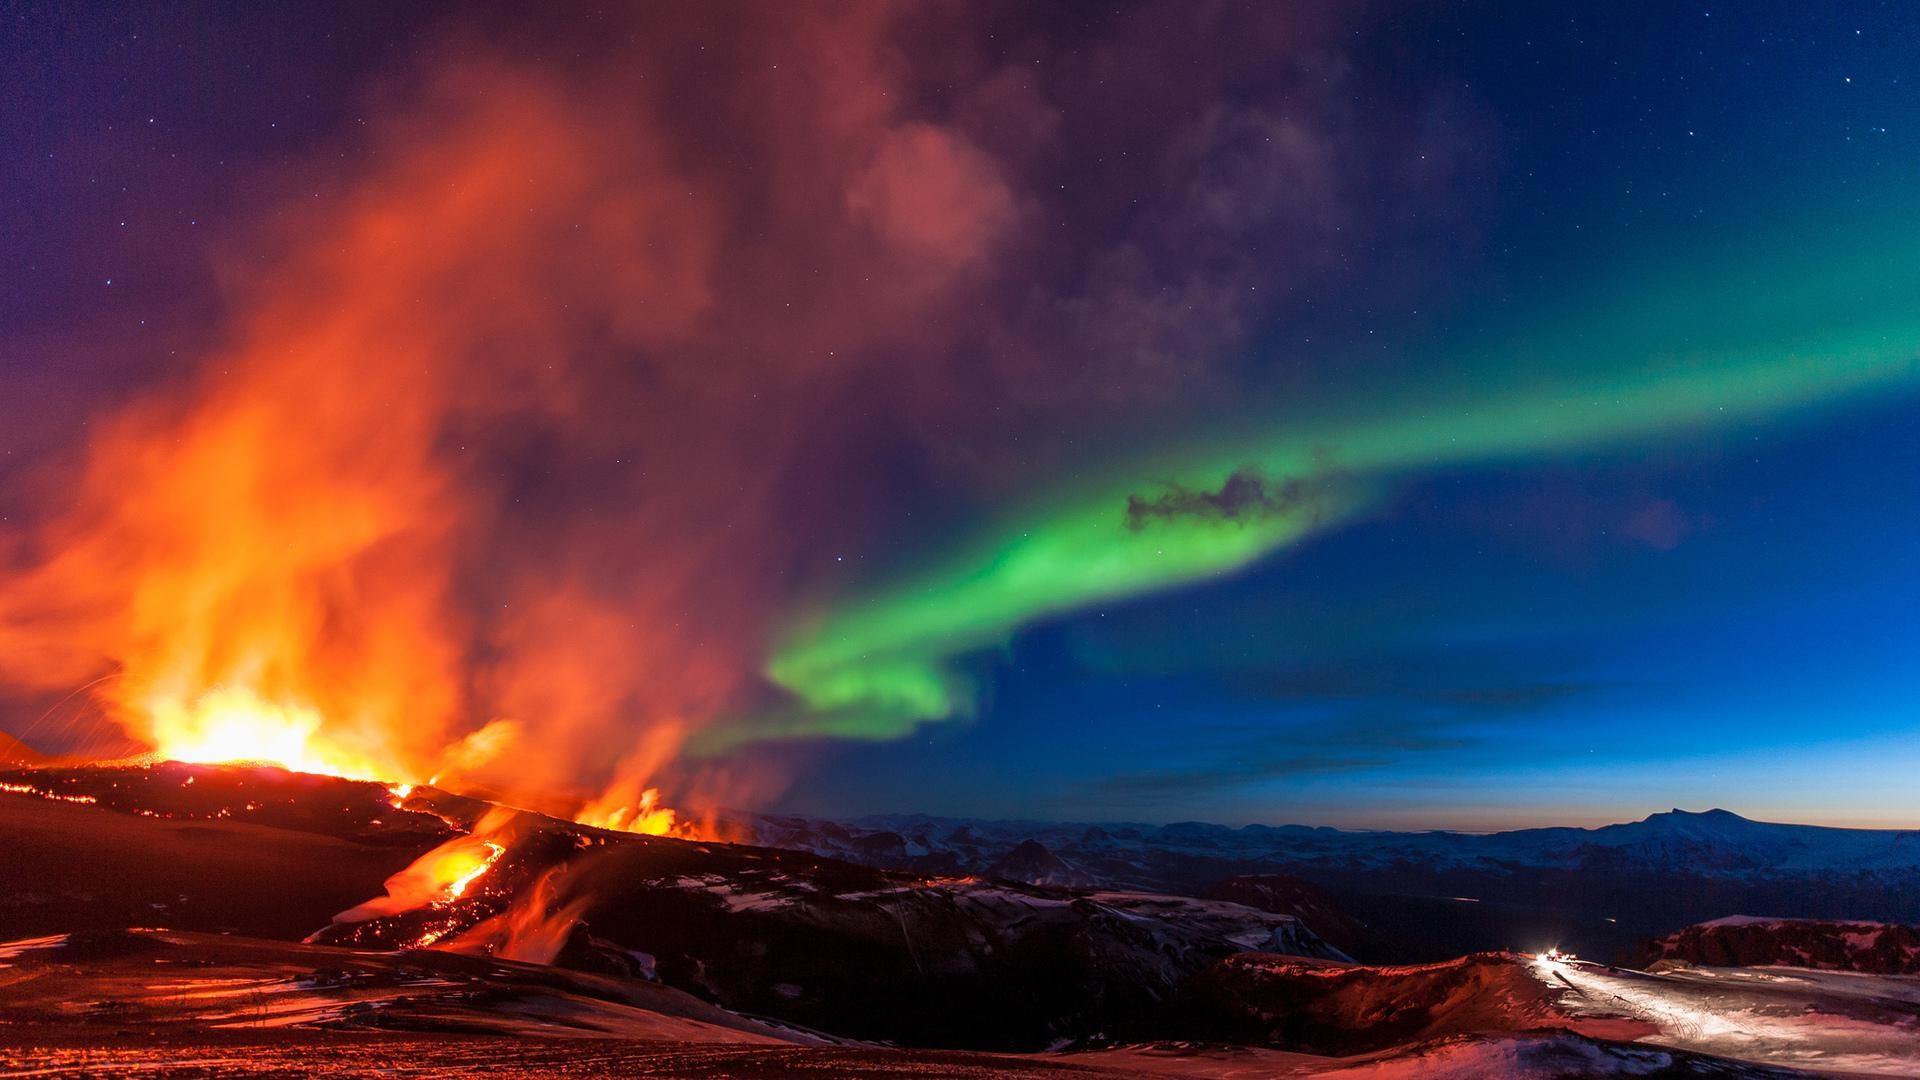 Desktop Images of Iceland Volcano: 10.04.15 by Jolyn Dyess